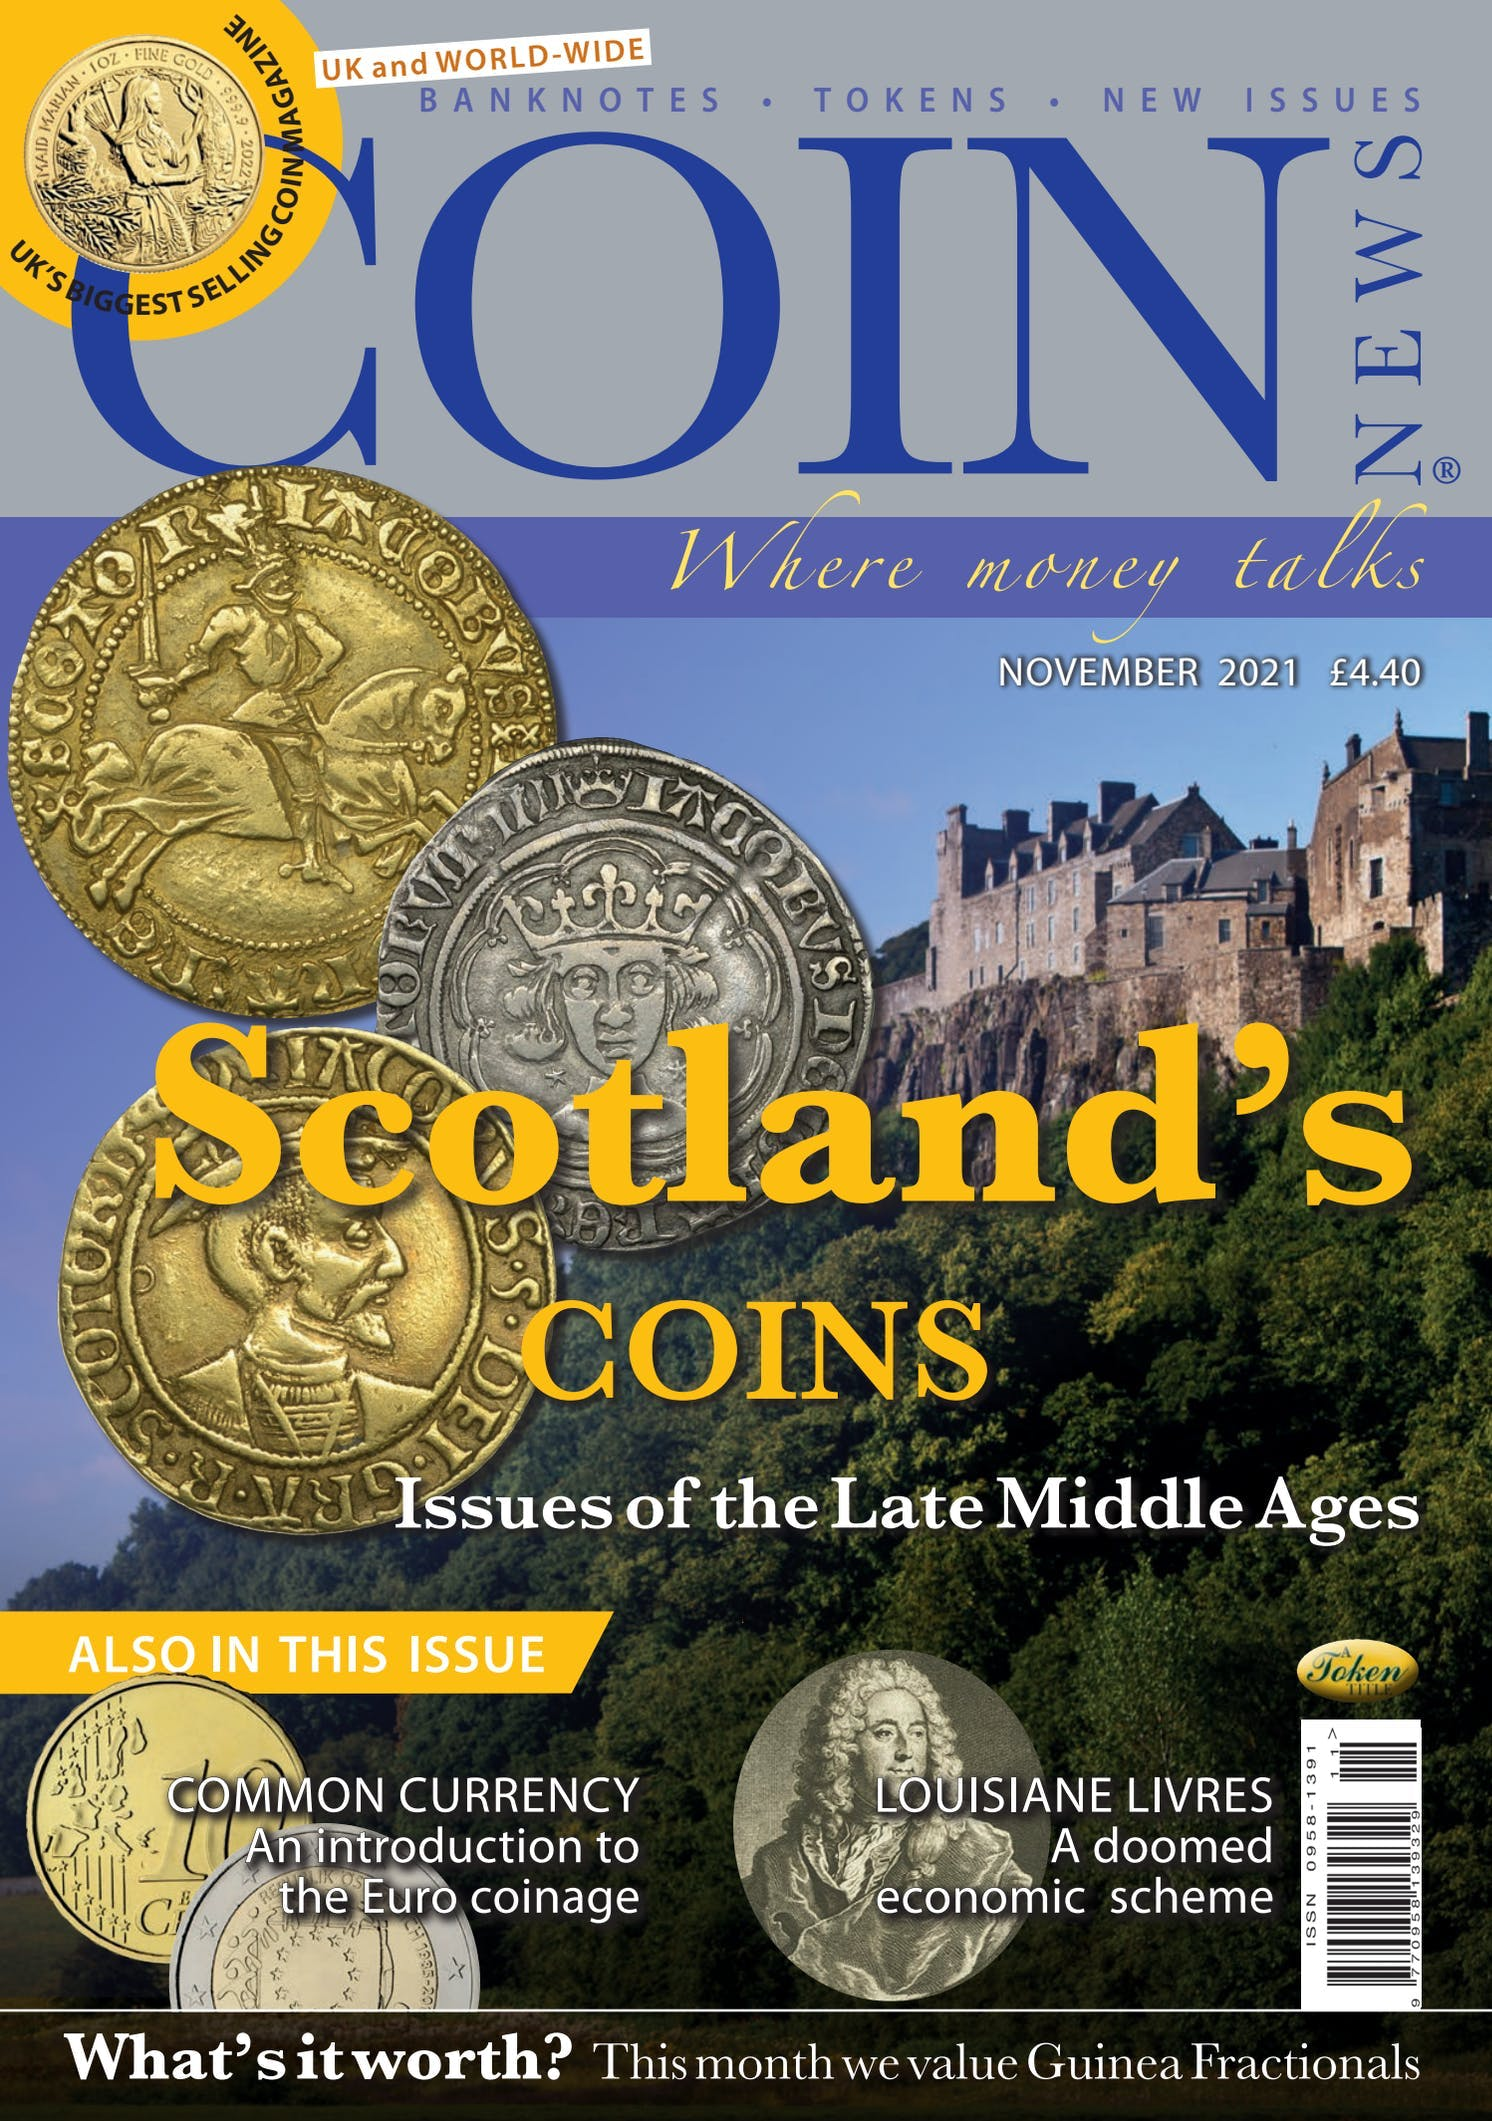 Front cover of 'Scotlands coins', Coin News November 2021, Volume 58, Number 11 by Token Publishing